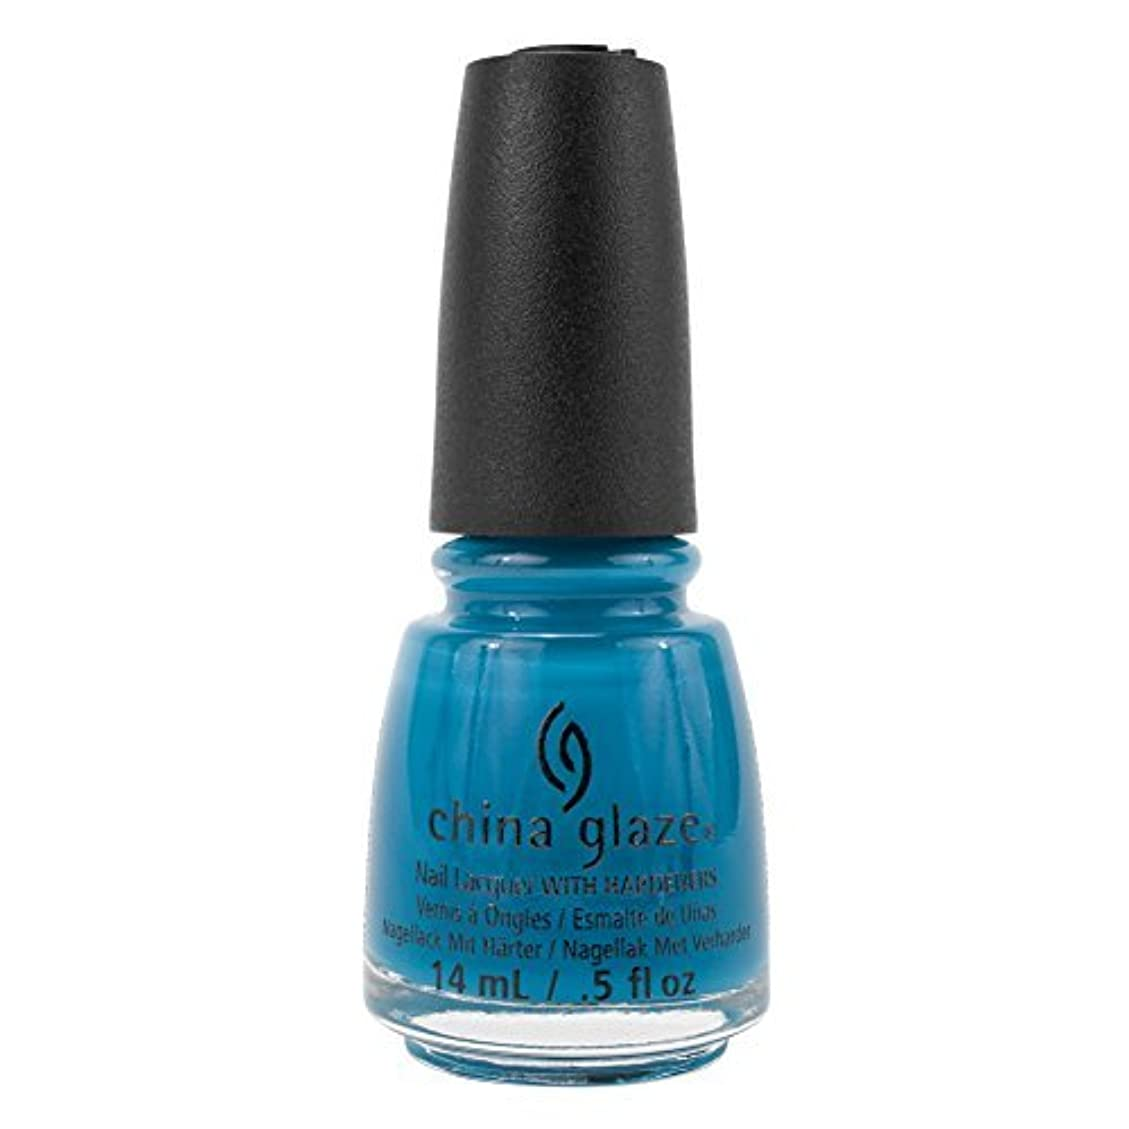 China Glaze Nail Polish-License & Registration Pls 82381 by China Glaze [並行輸入品]